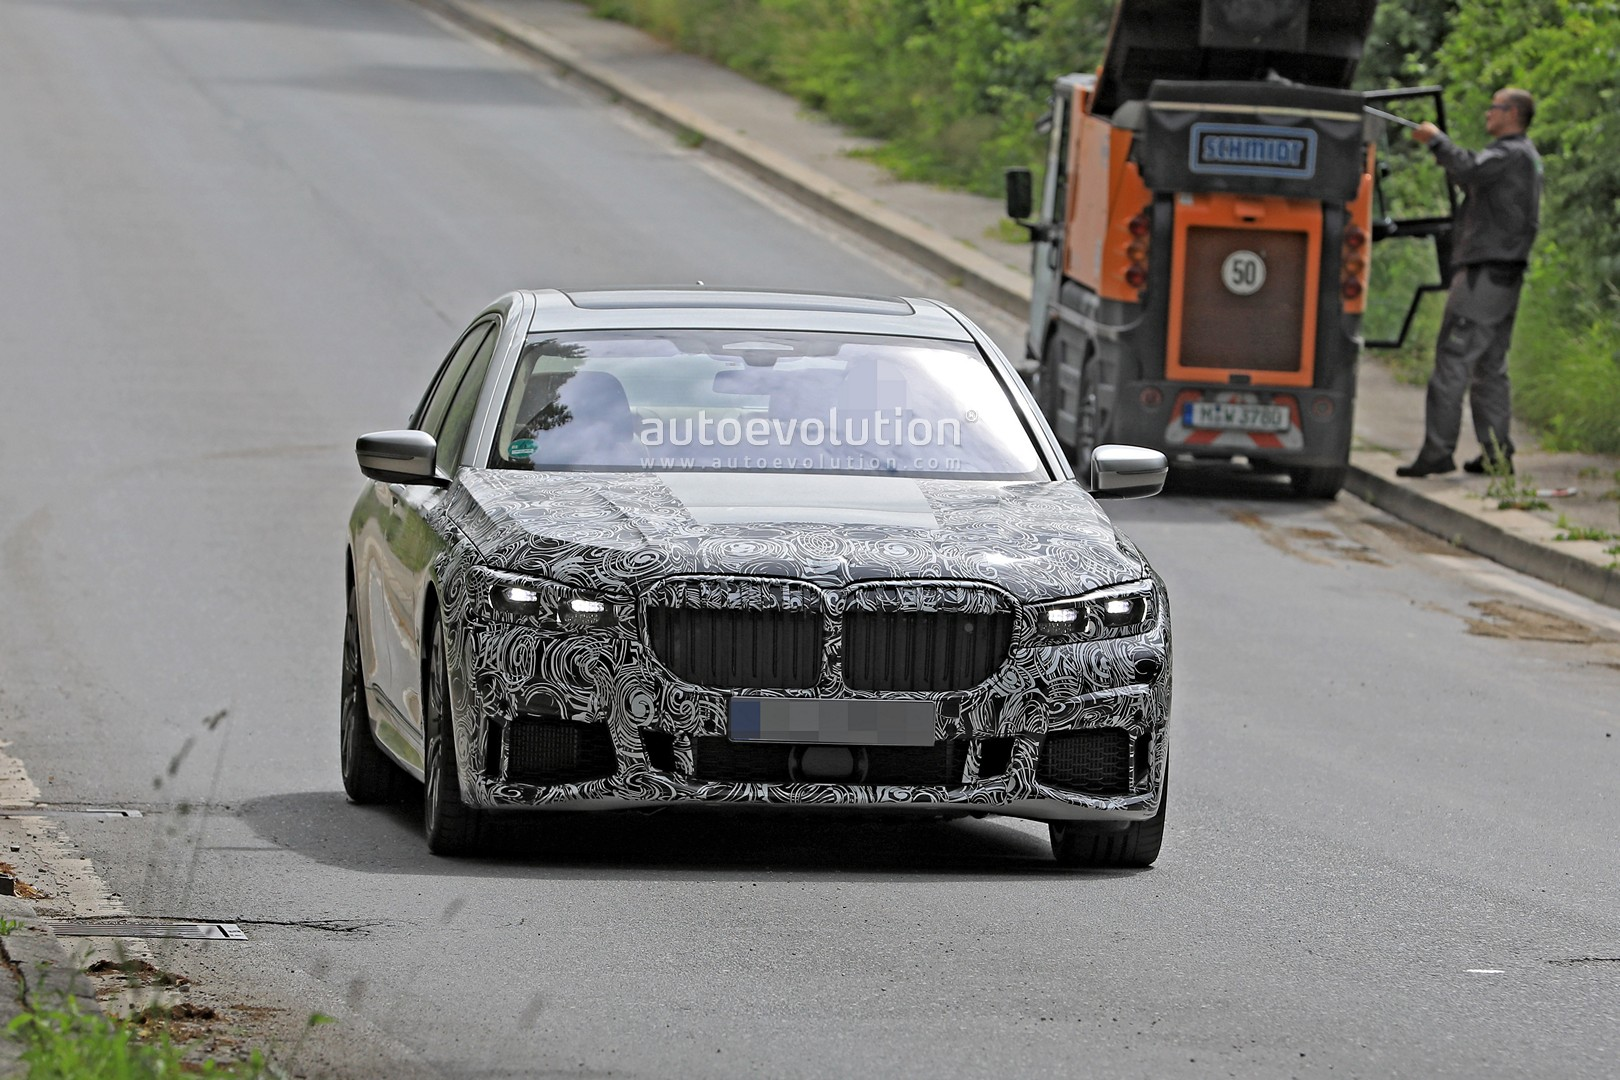 Spyshots Bmw 7 Series Refresh Sports The Mother Of All Kidney